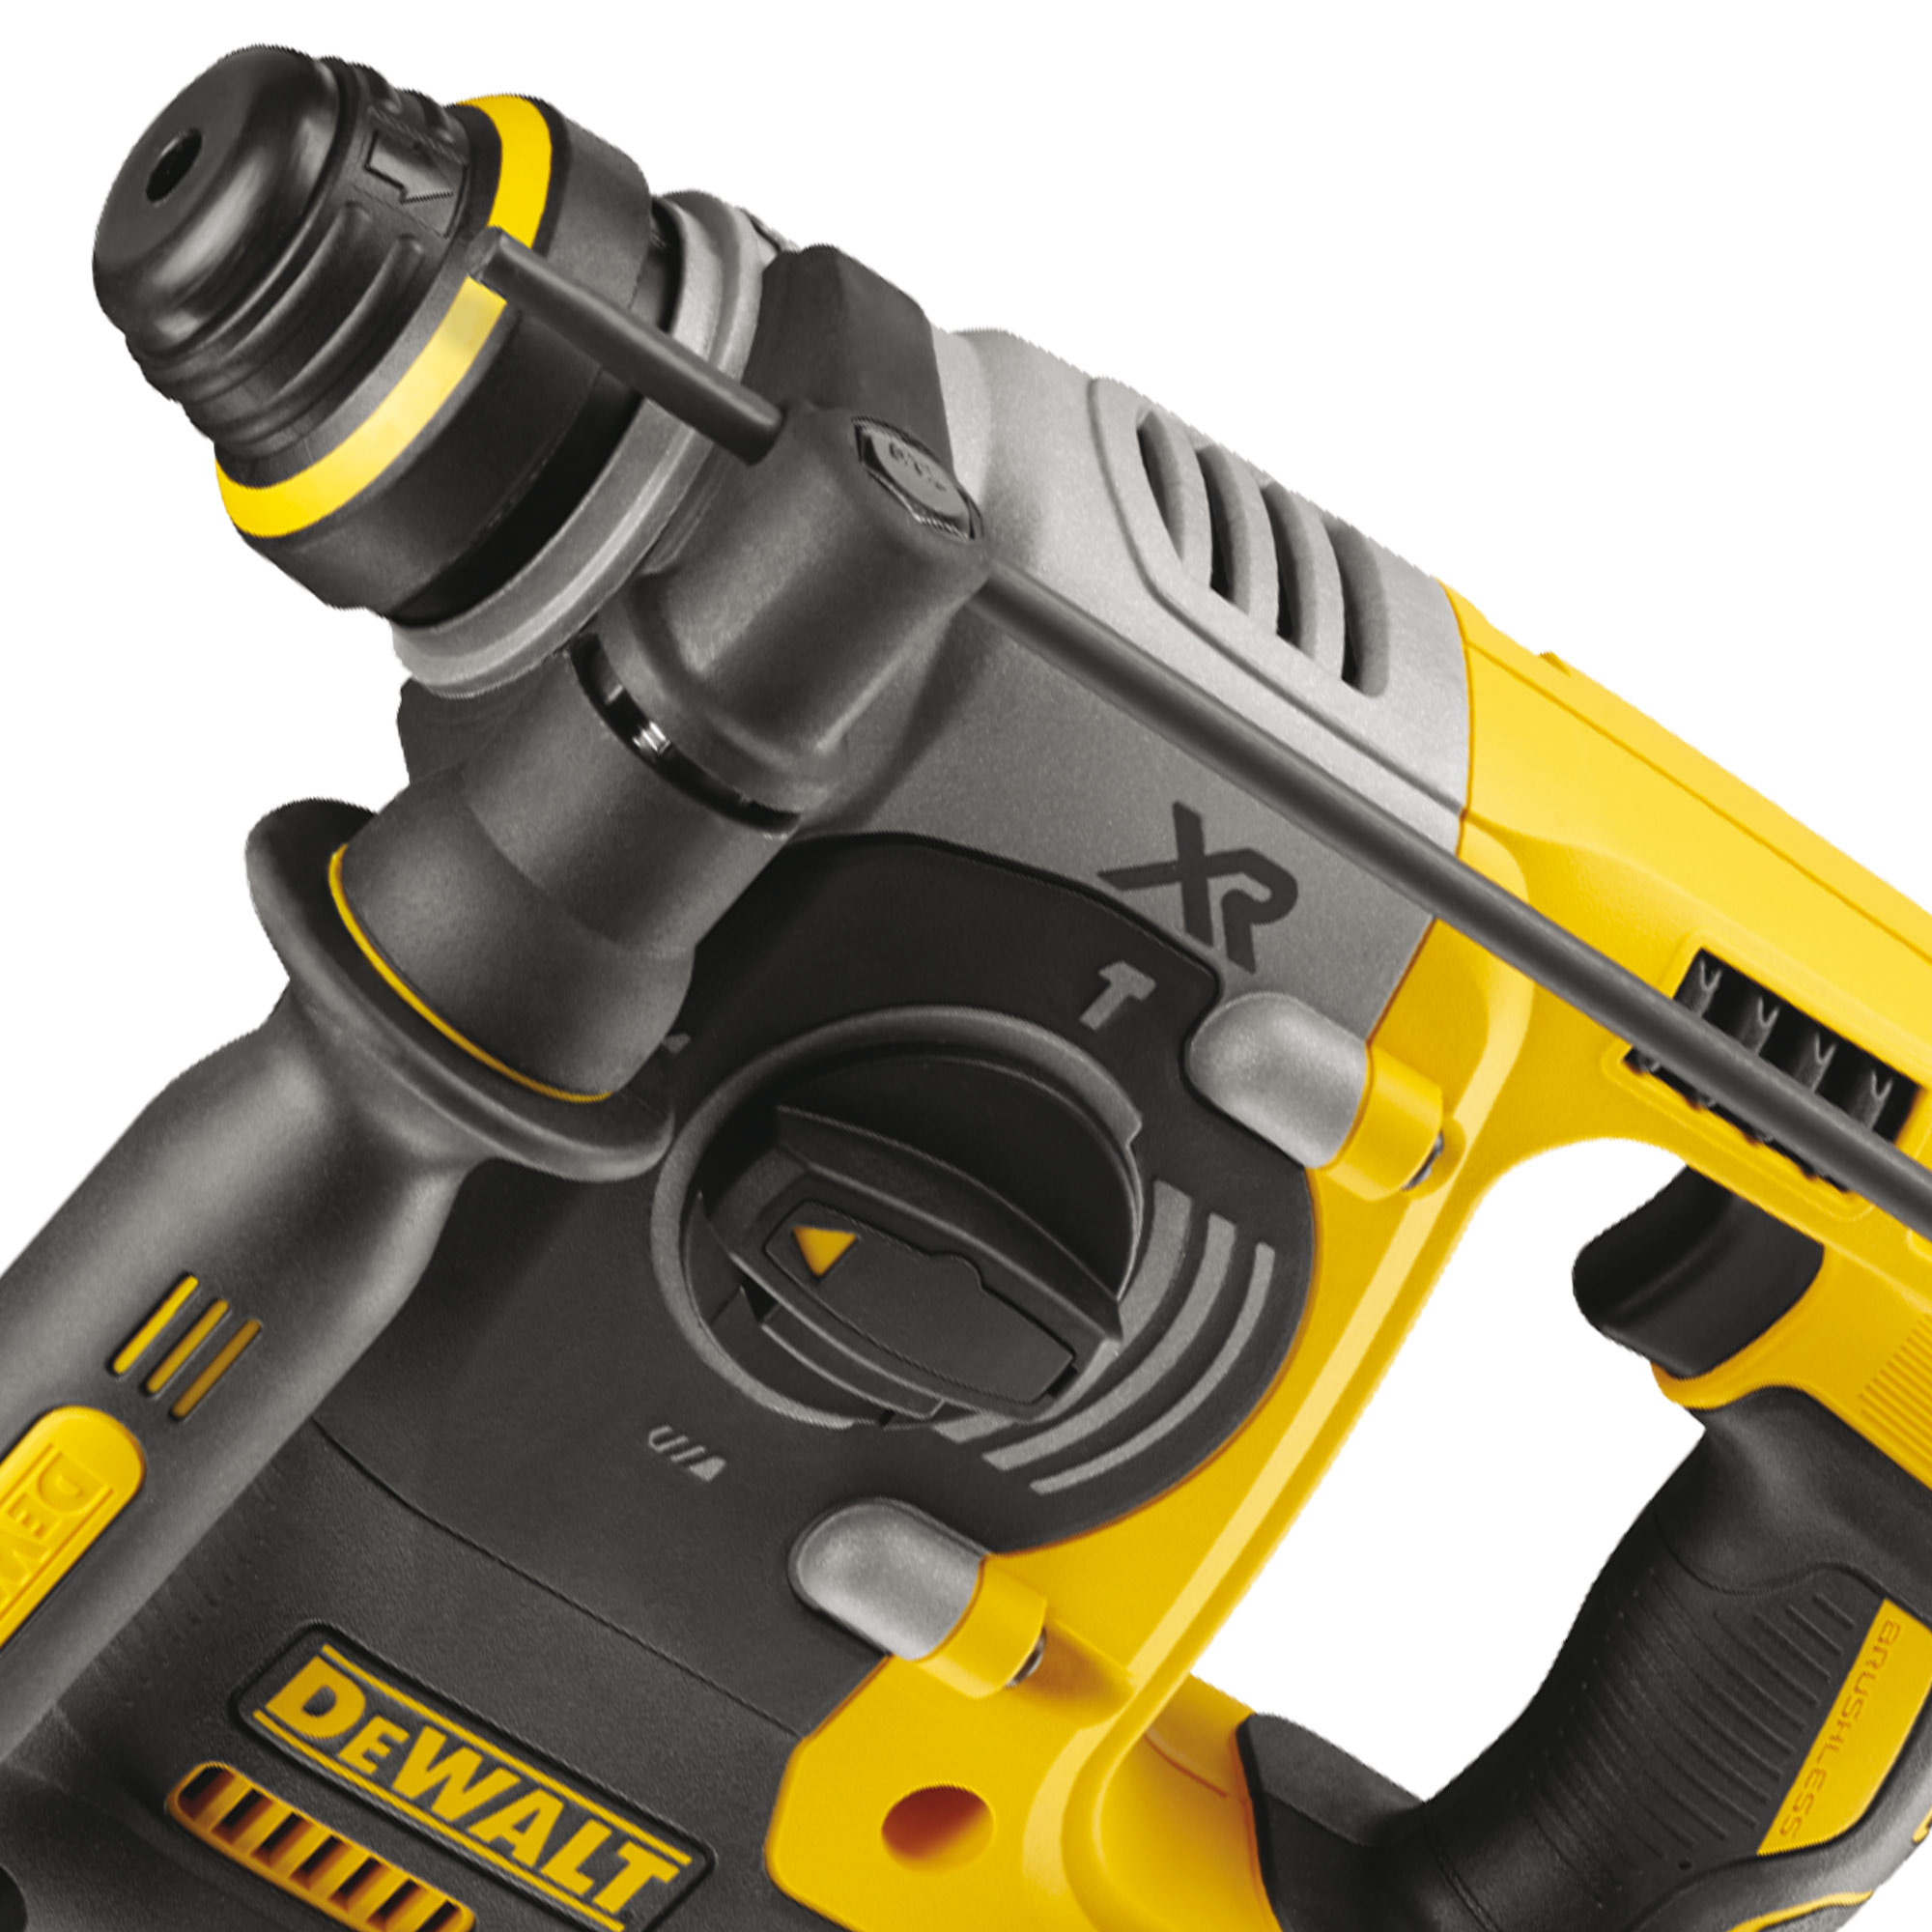 dewalt dch273 dewalt 18v li ion xr sds rotary hammer. Black Bedroom Furniture Sets. Home Design Ideas